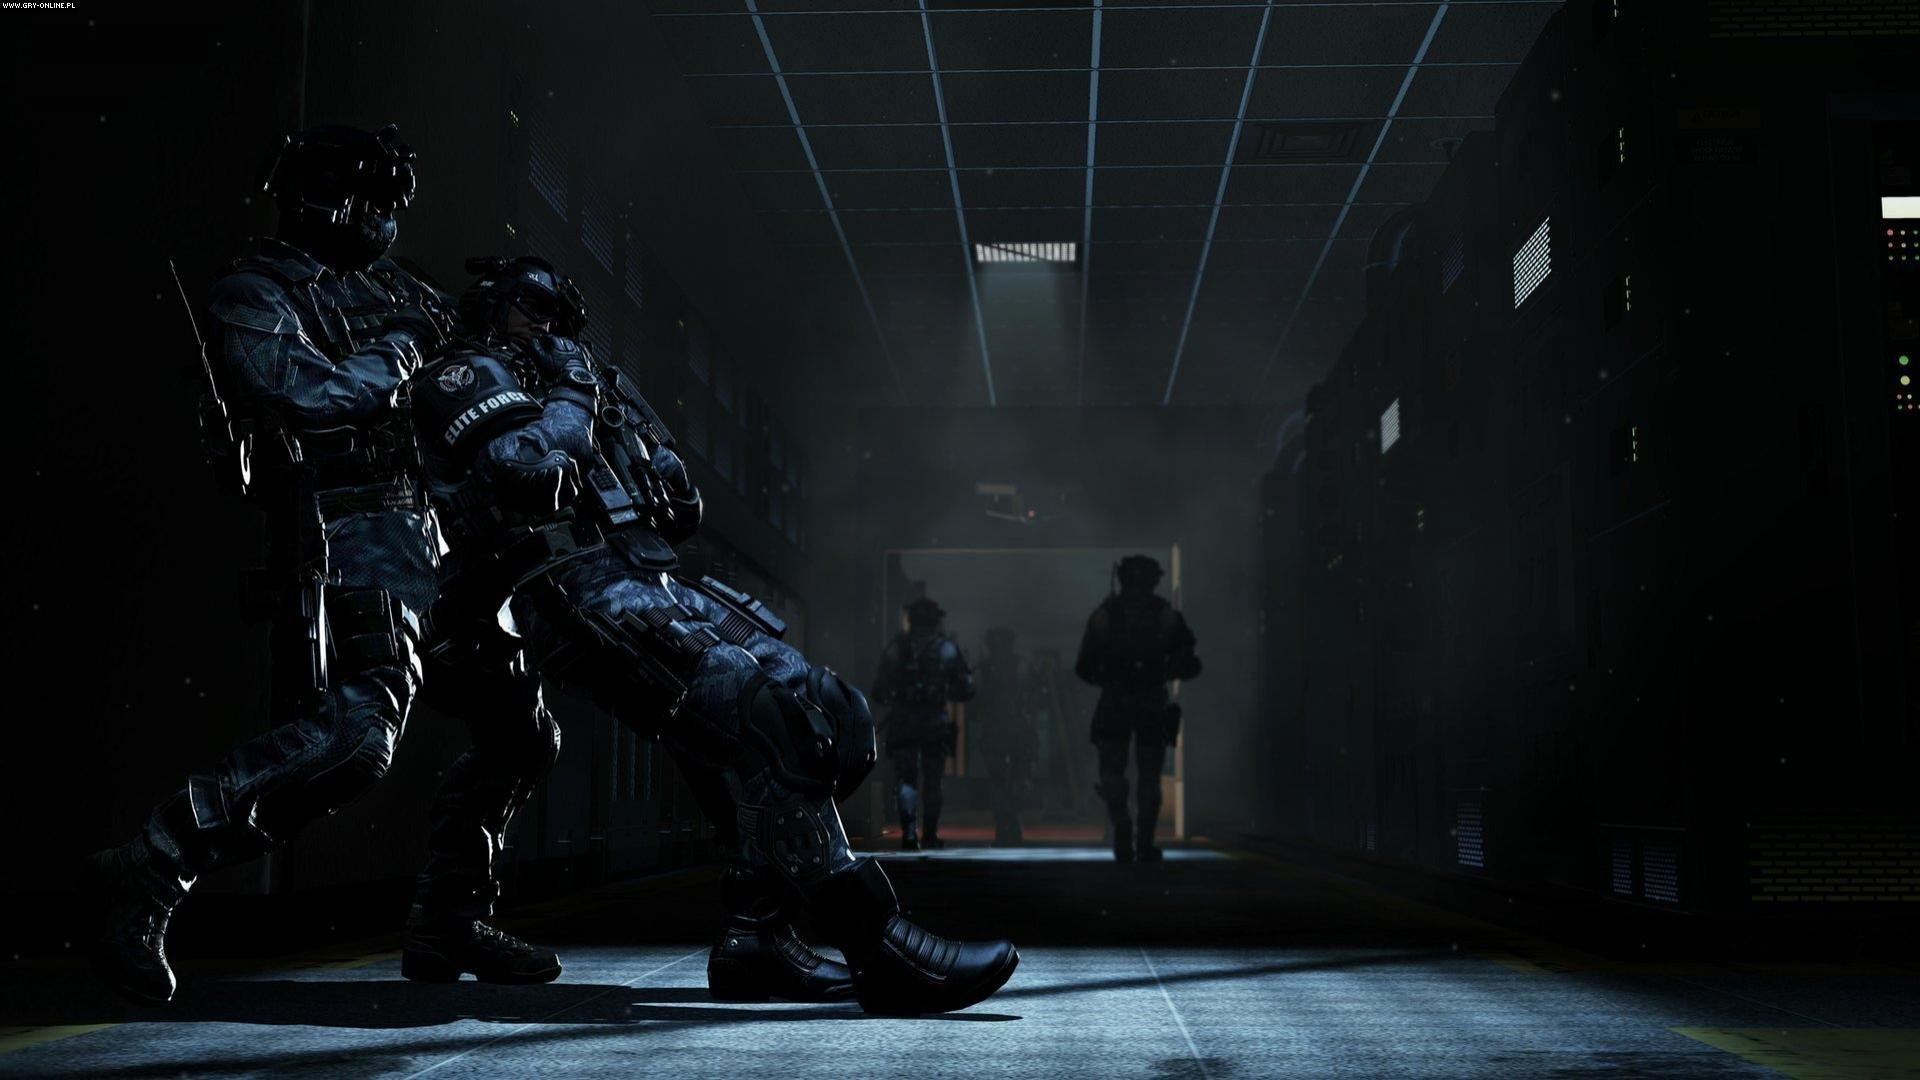 Call Of Duty Ghosts Wallpapers Hd For Desktop Backgrounds